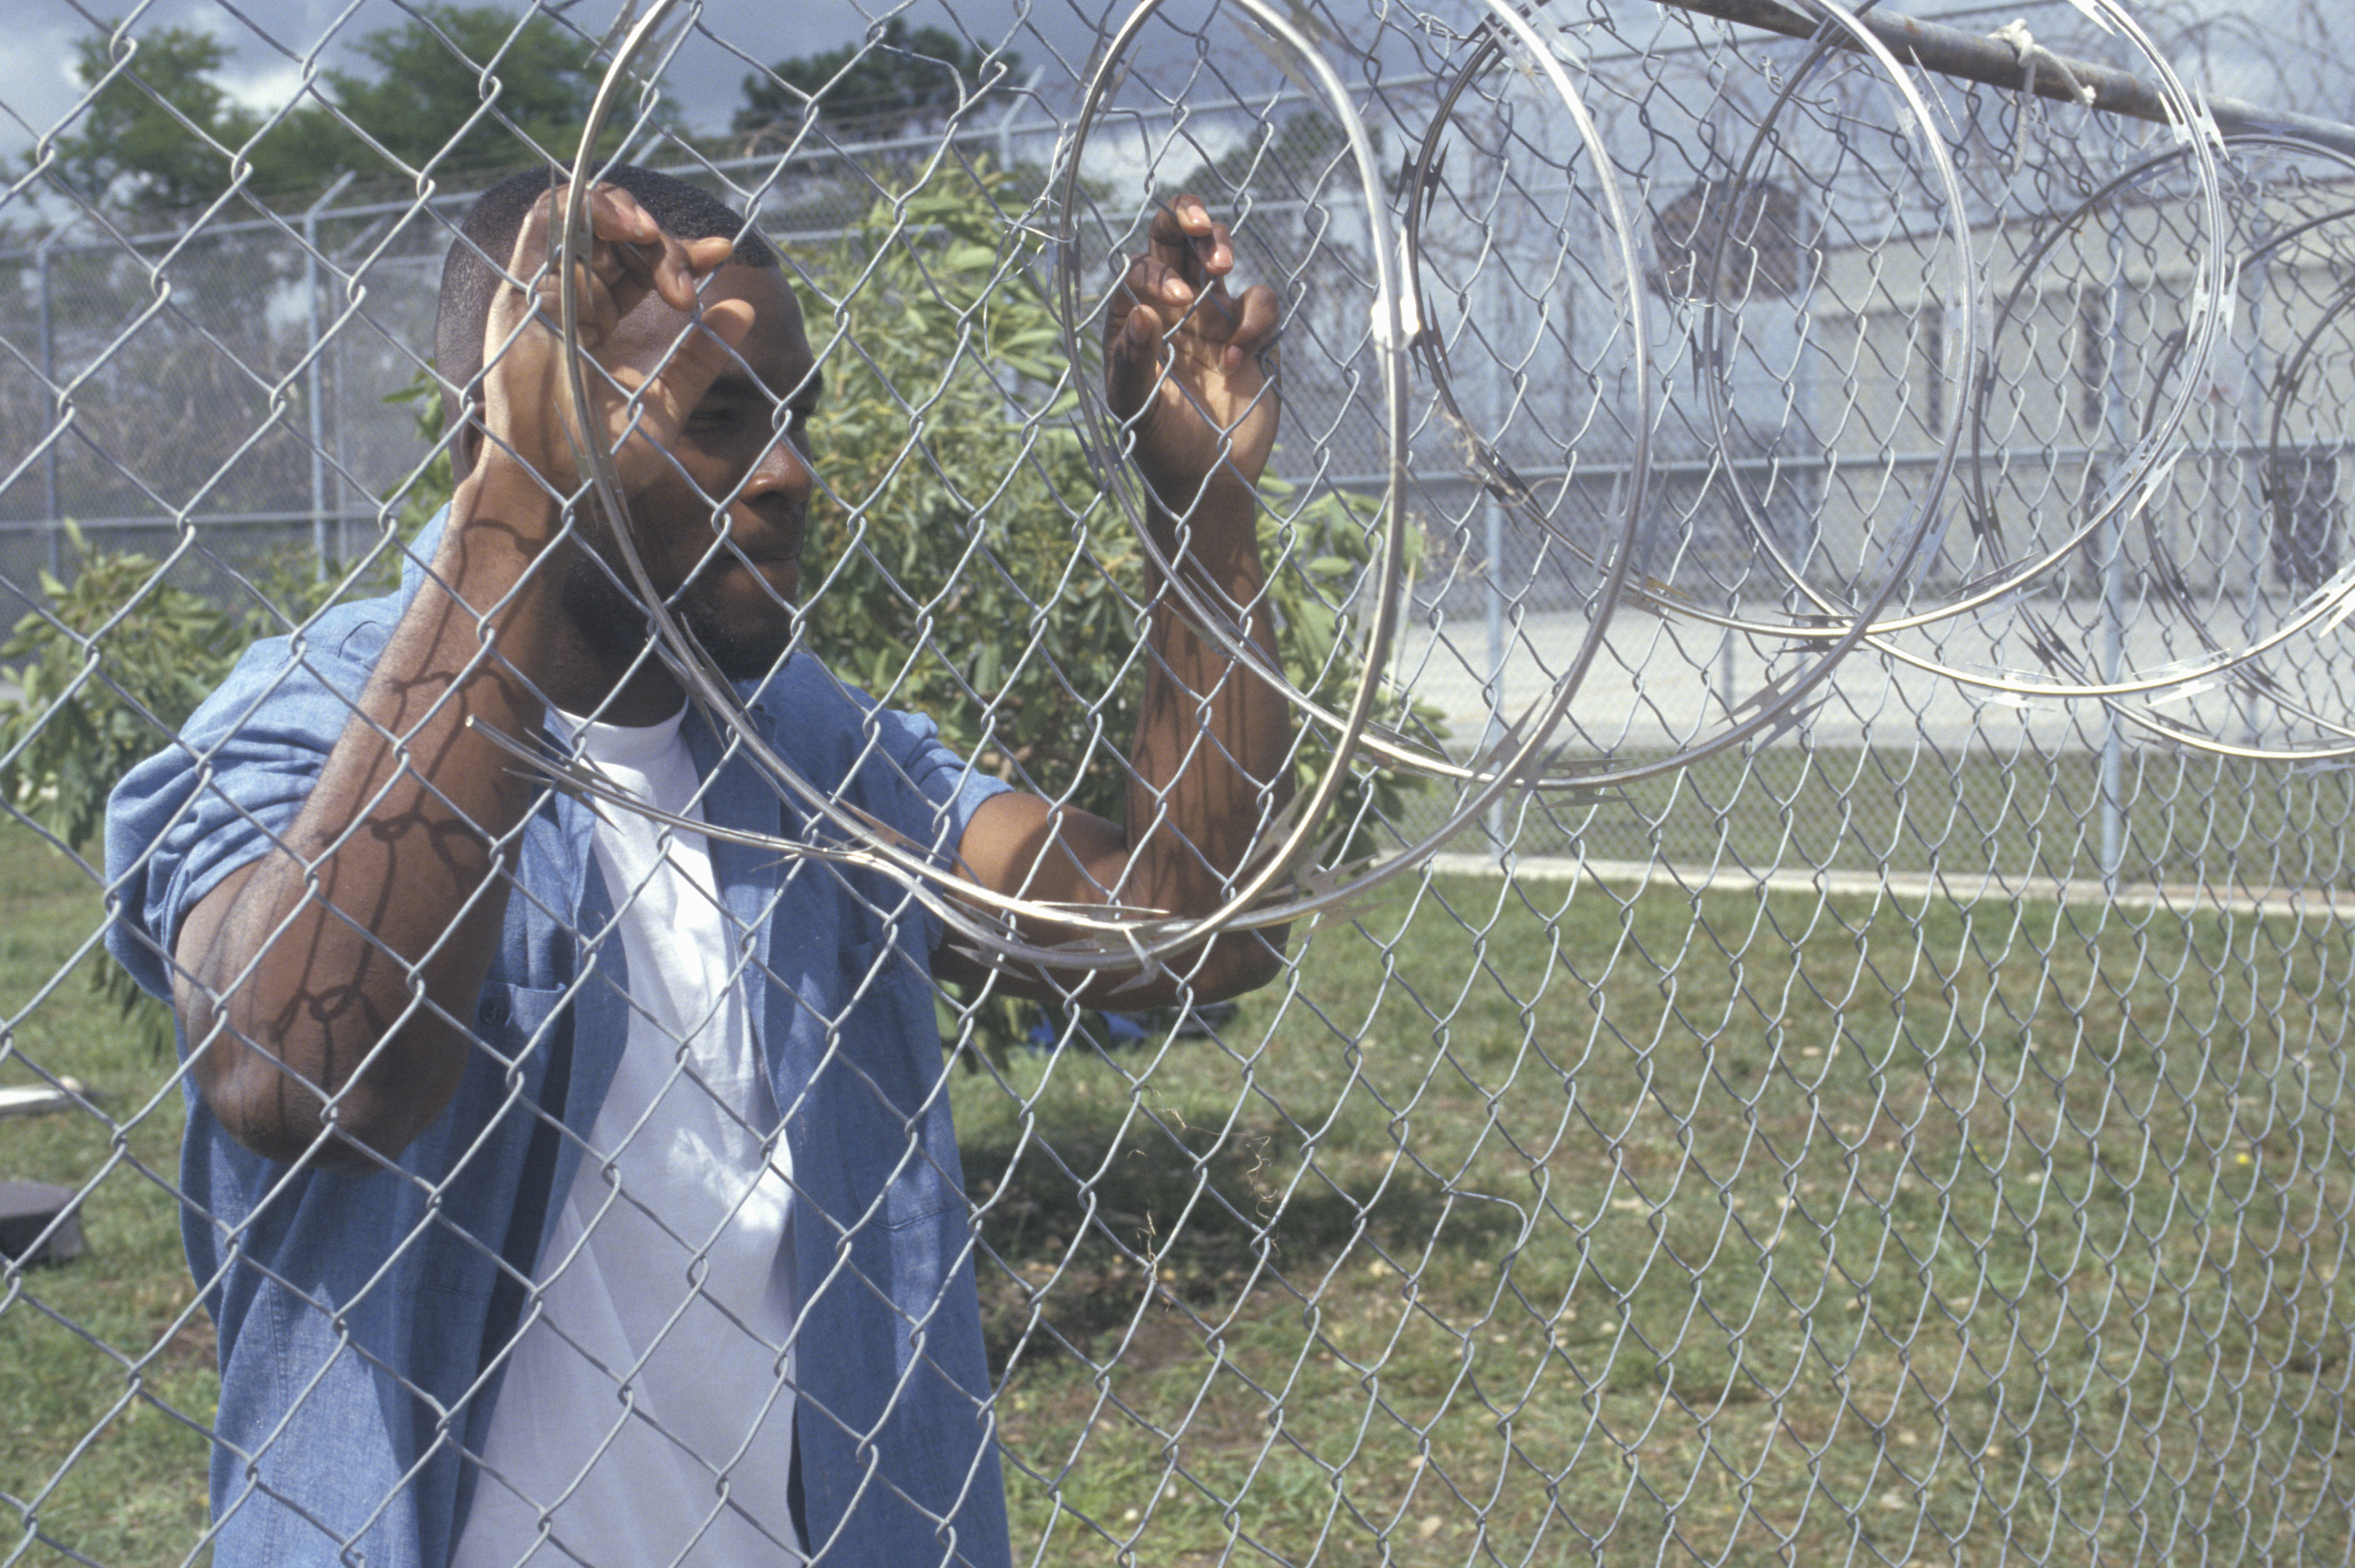 6 Long-Term Effects of America's Mass Incarceration Crisis